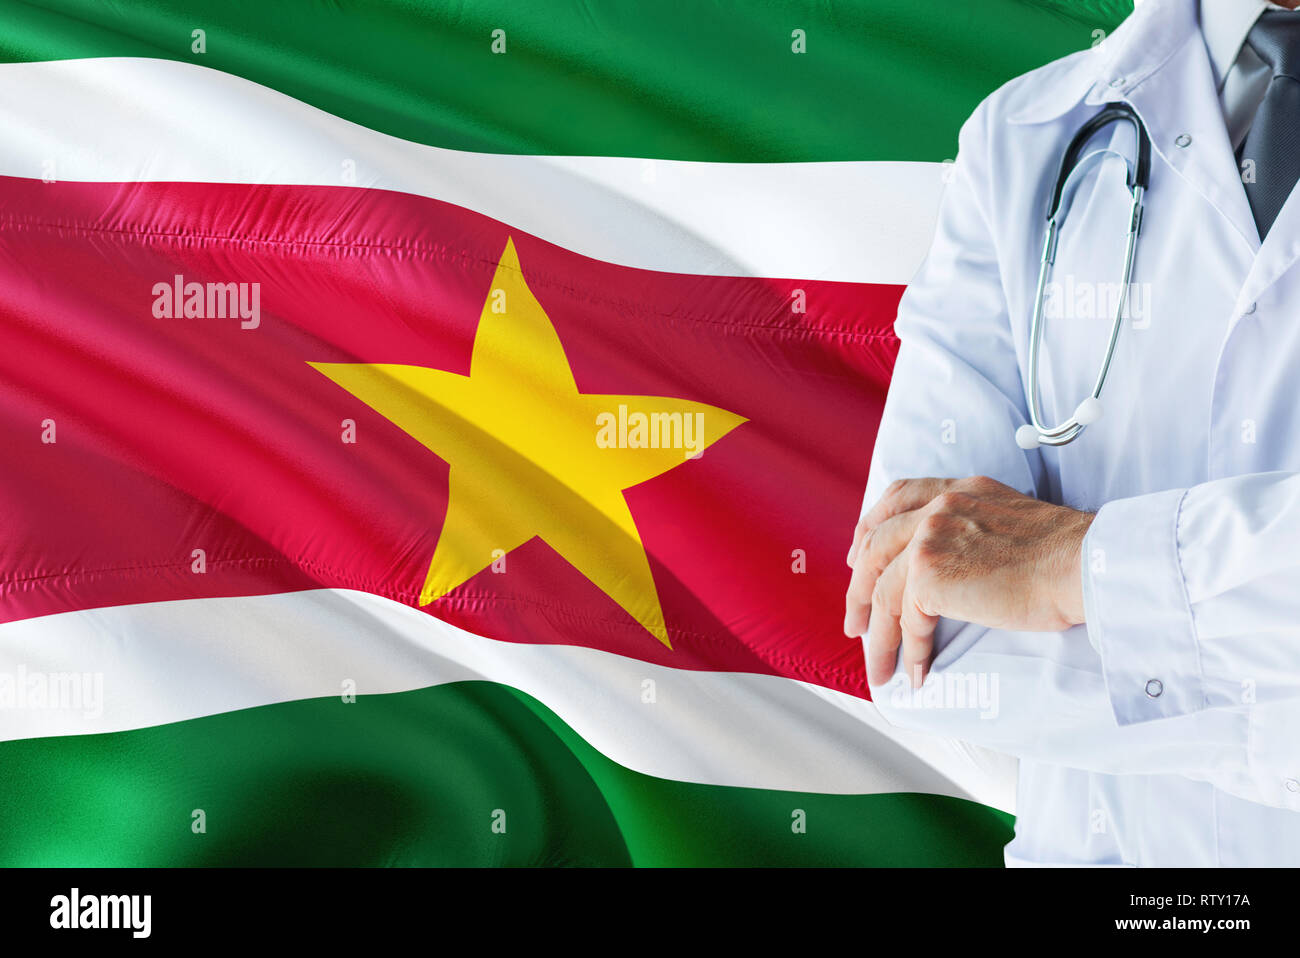 Surinamese Doctor standing with stethoscope on Suriname flag background. National healthcare system concept, medical theme. - Stock Image